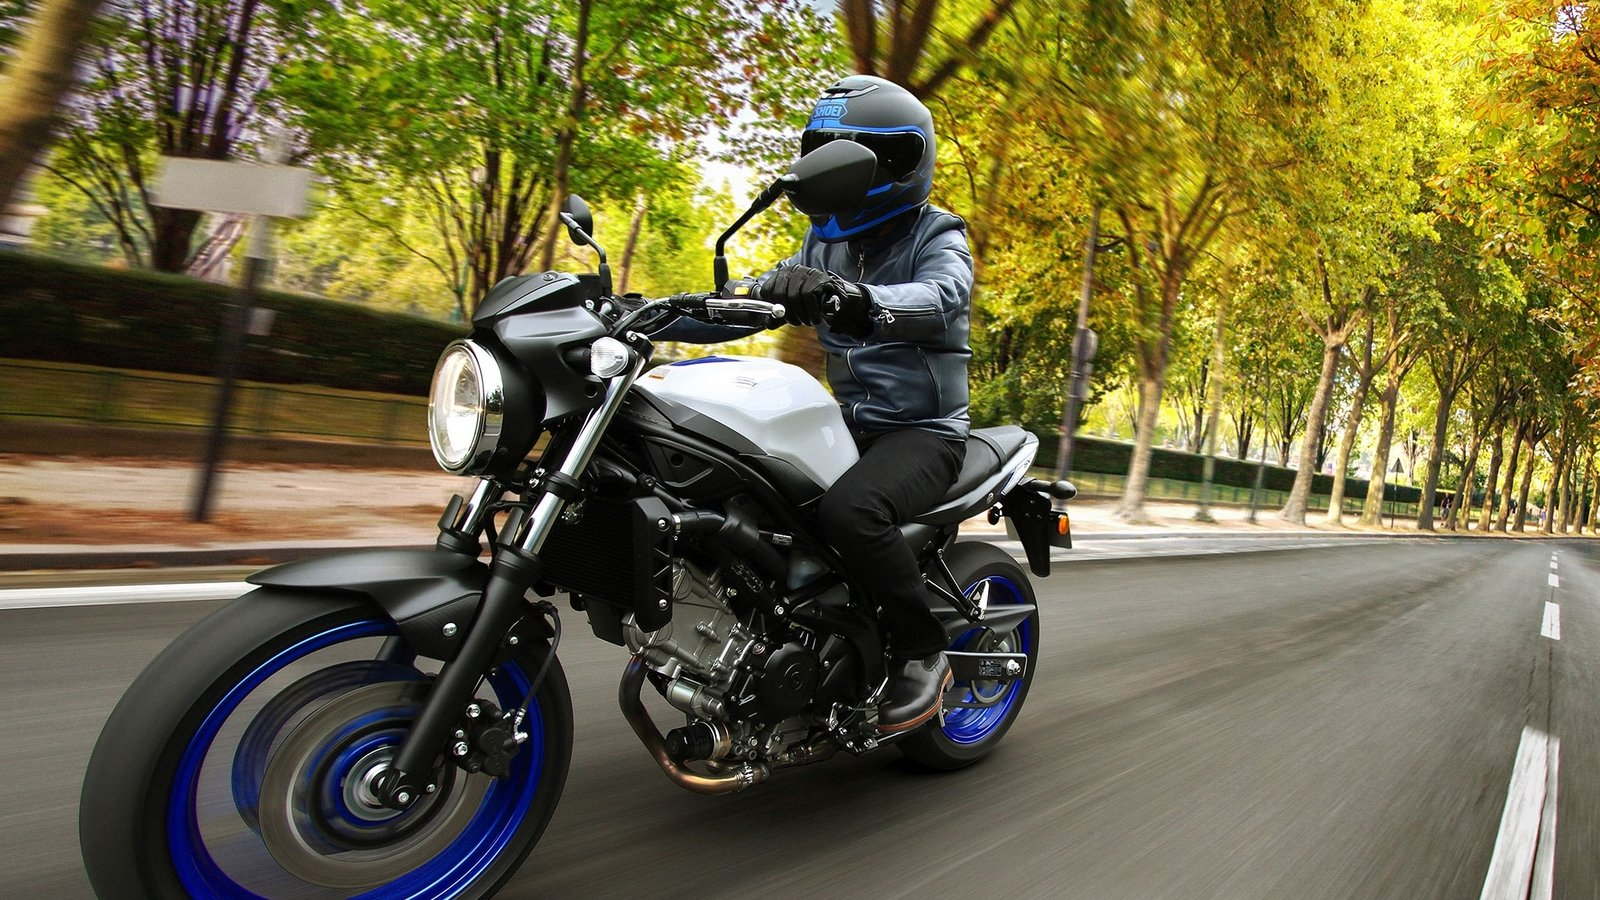 2017 suzuki sv650 abs picture 664041 motorcycle review top speed. Black Bedroom Furniture Sets. Home Design Ideas